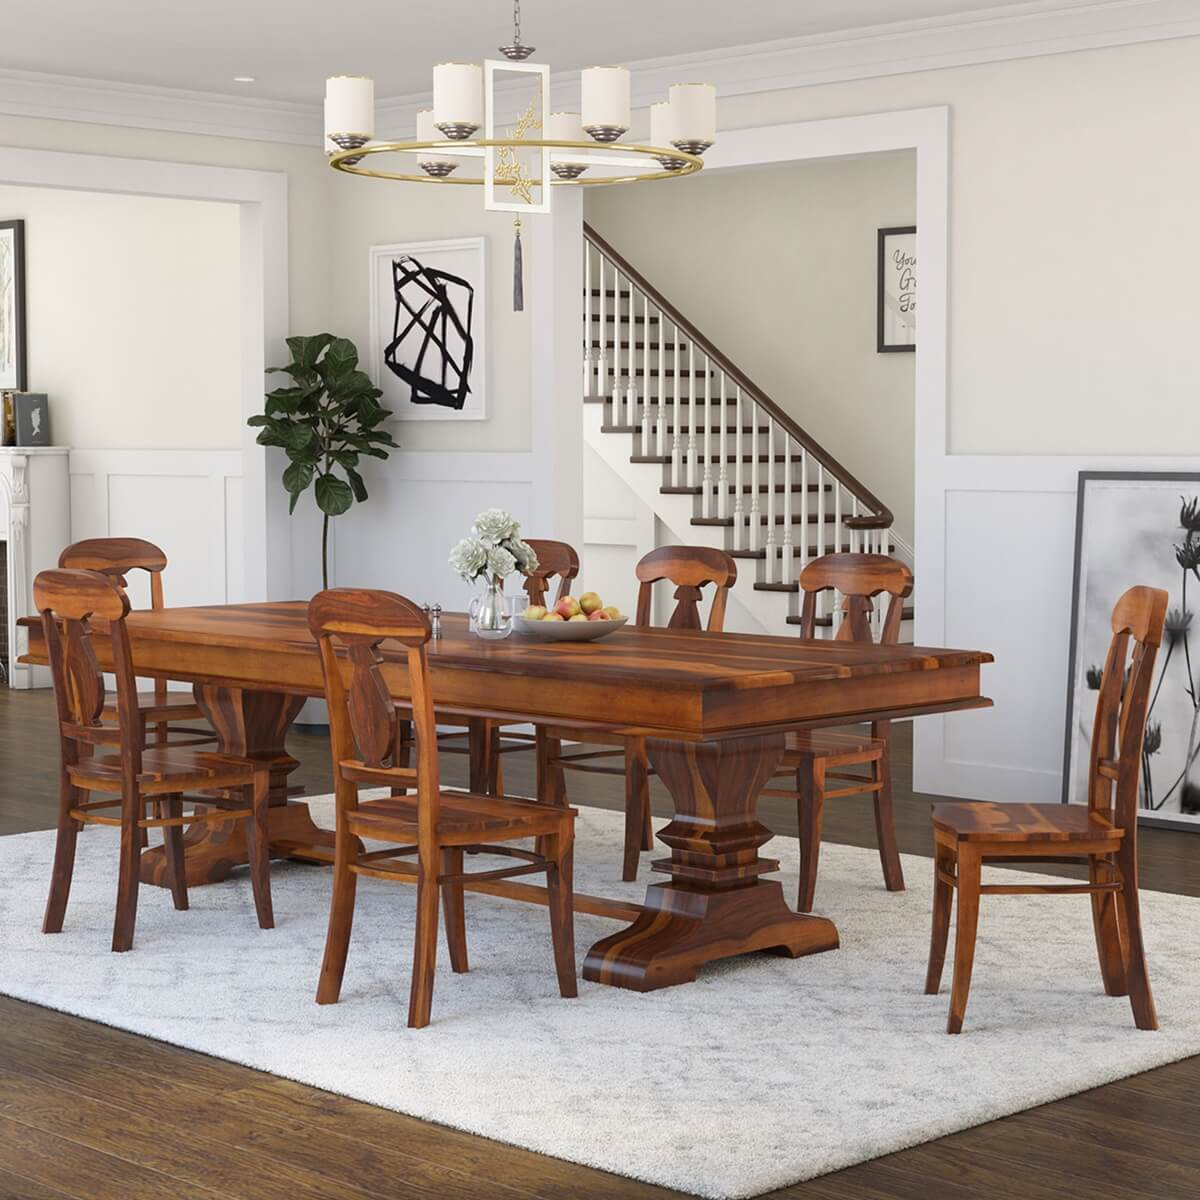 Nottingham solid wood 92 trestle dining table benches 2 for Solid wood dining table